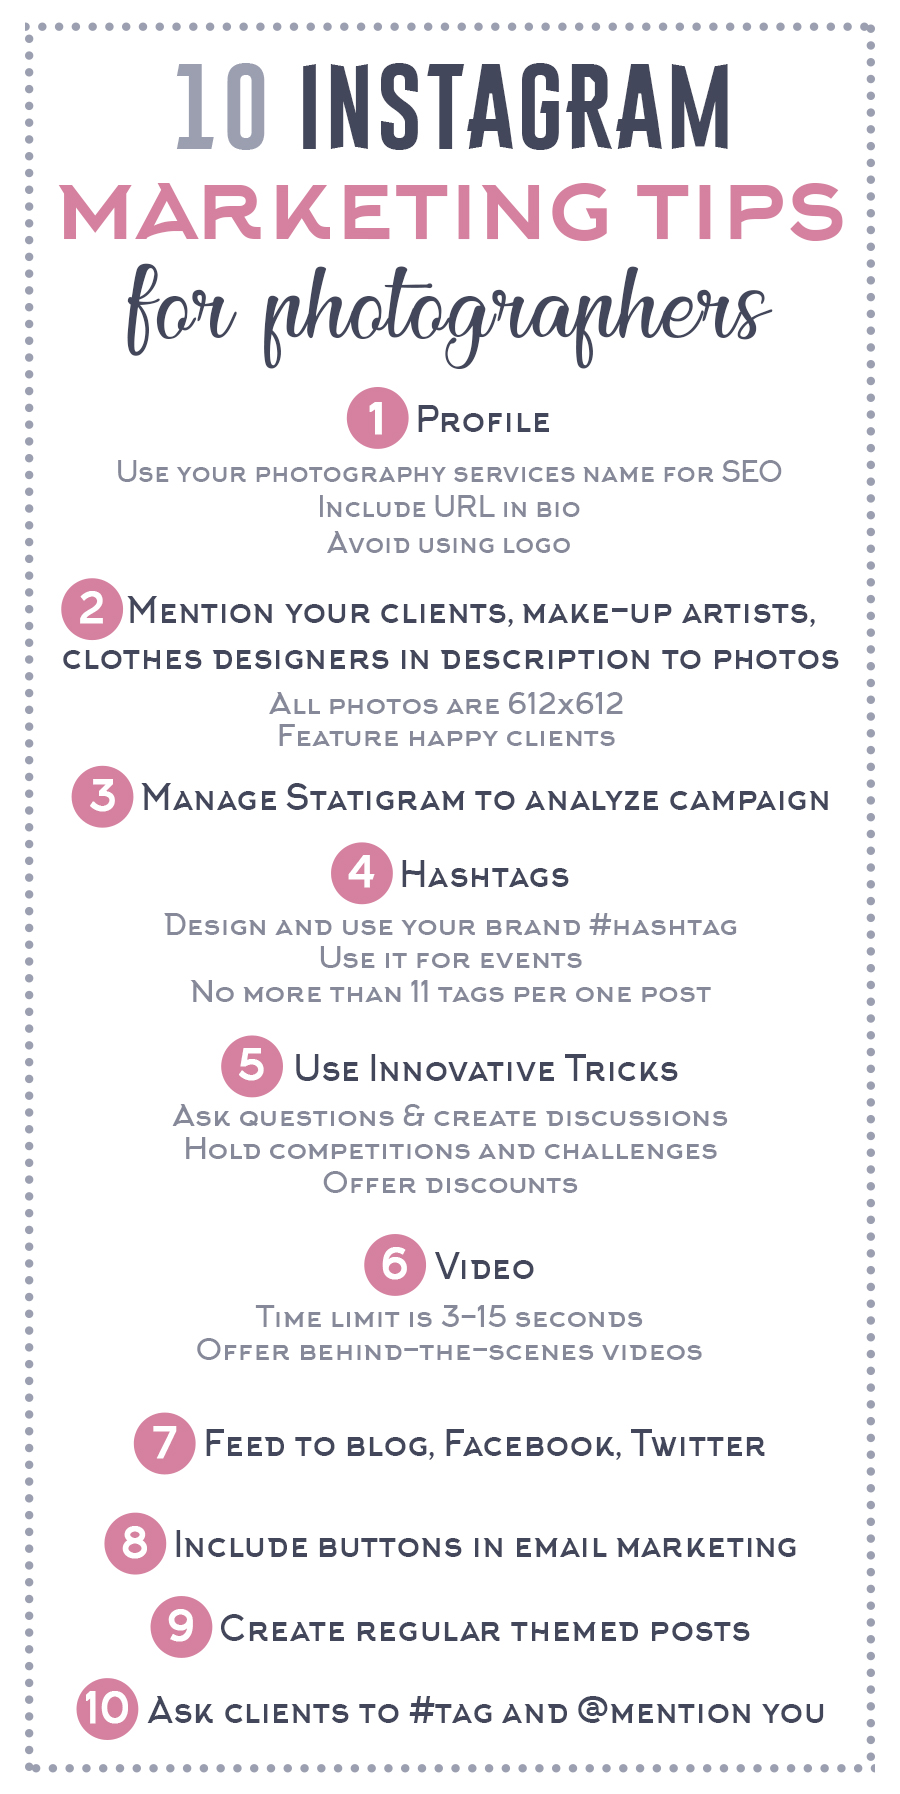 instagram marketing tips for photography business